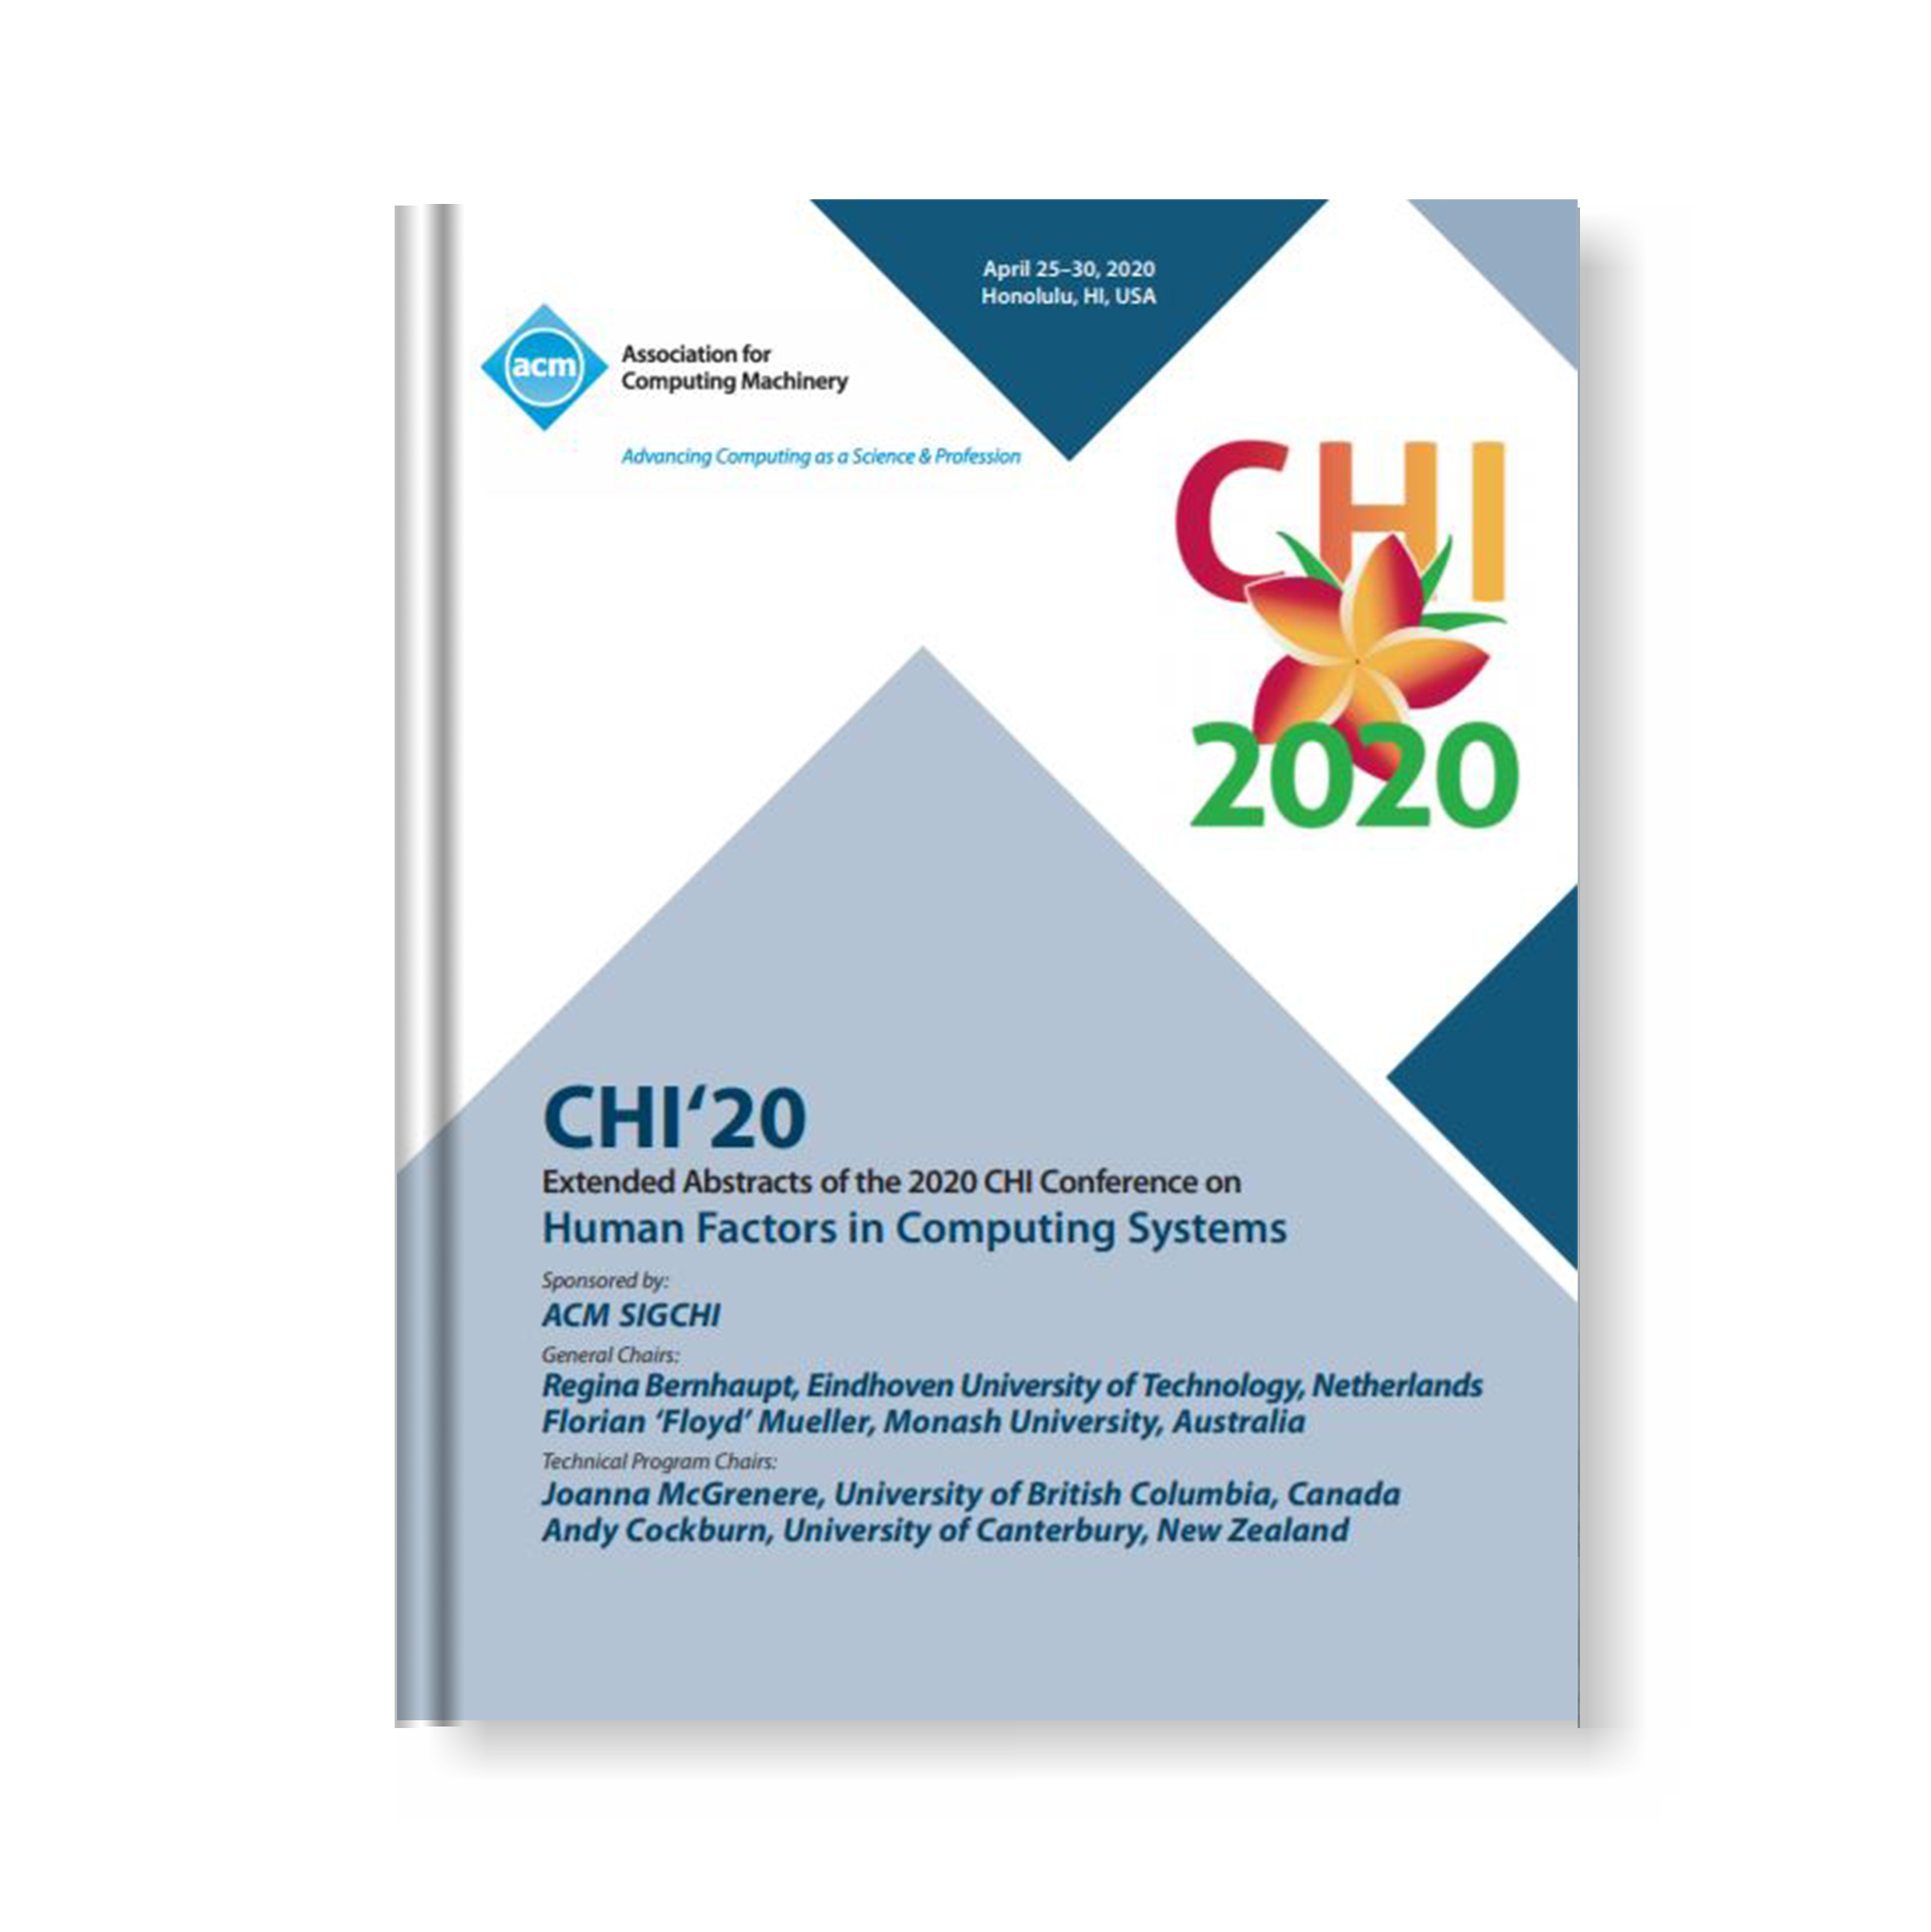 CHI EA '20: Extended Abstracts of the 2020 CHI Conference on Human Factors in Computing Systems